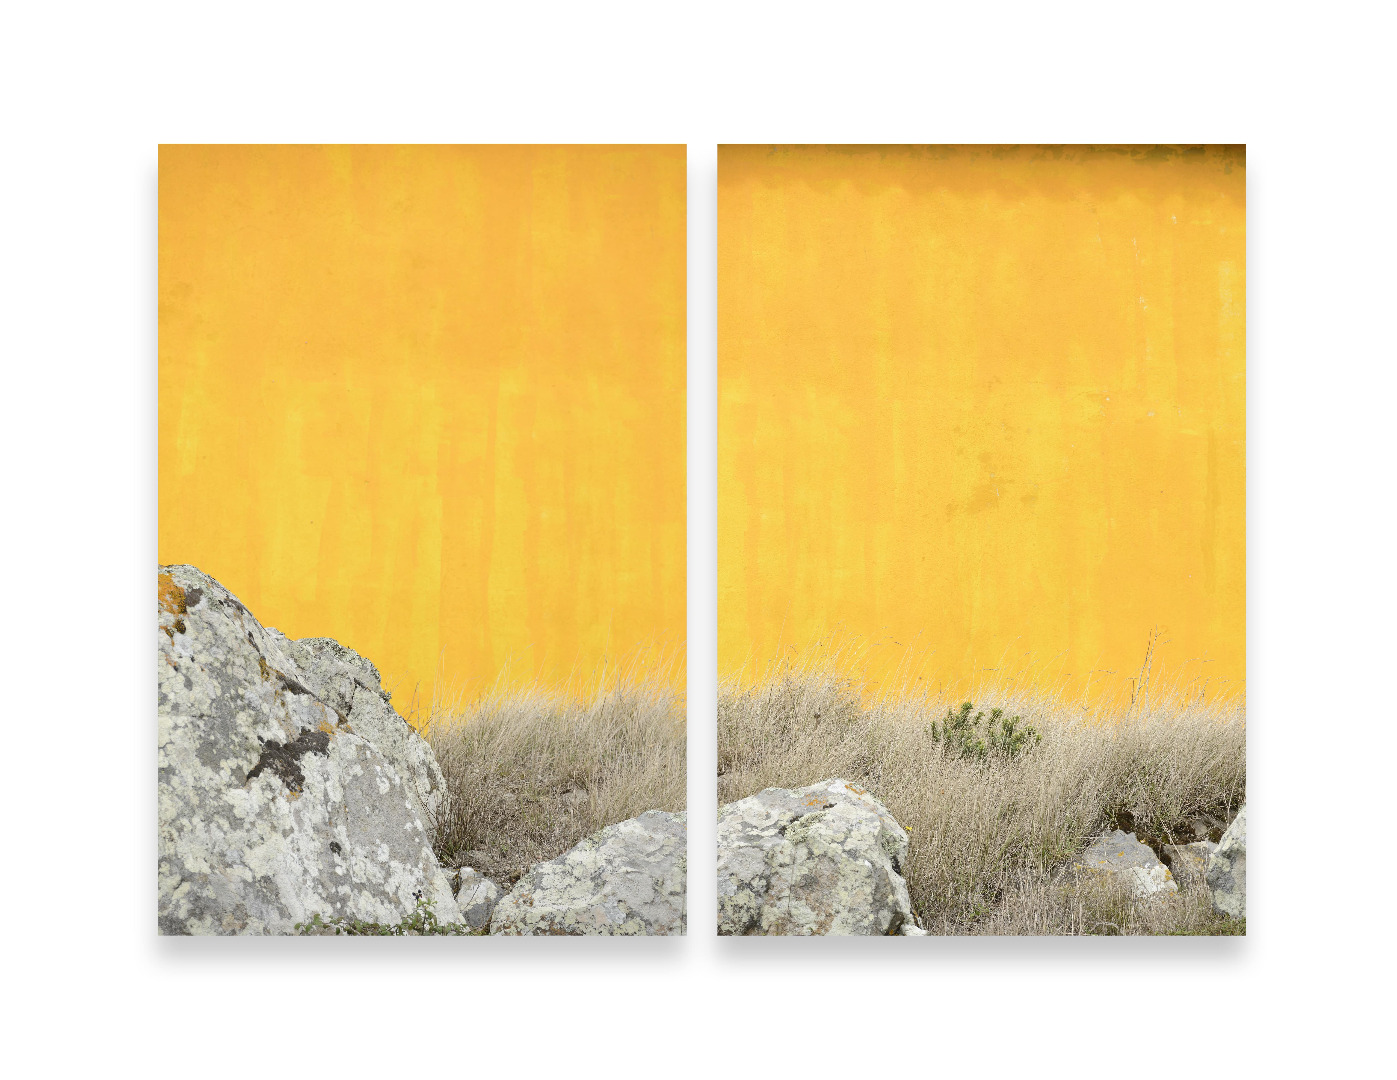 Johannes Kersting, Golden Yellow, 2015, Pigment Print, je 120 x 80 cm © the artist